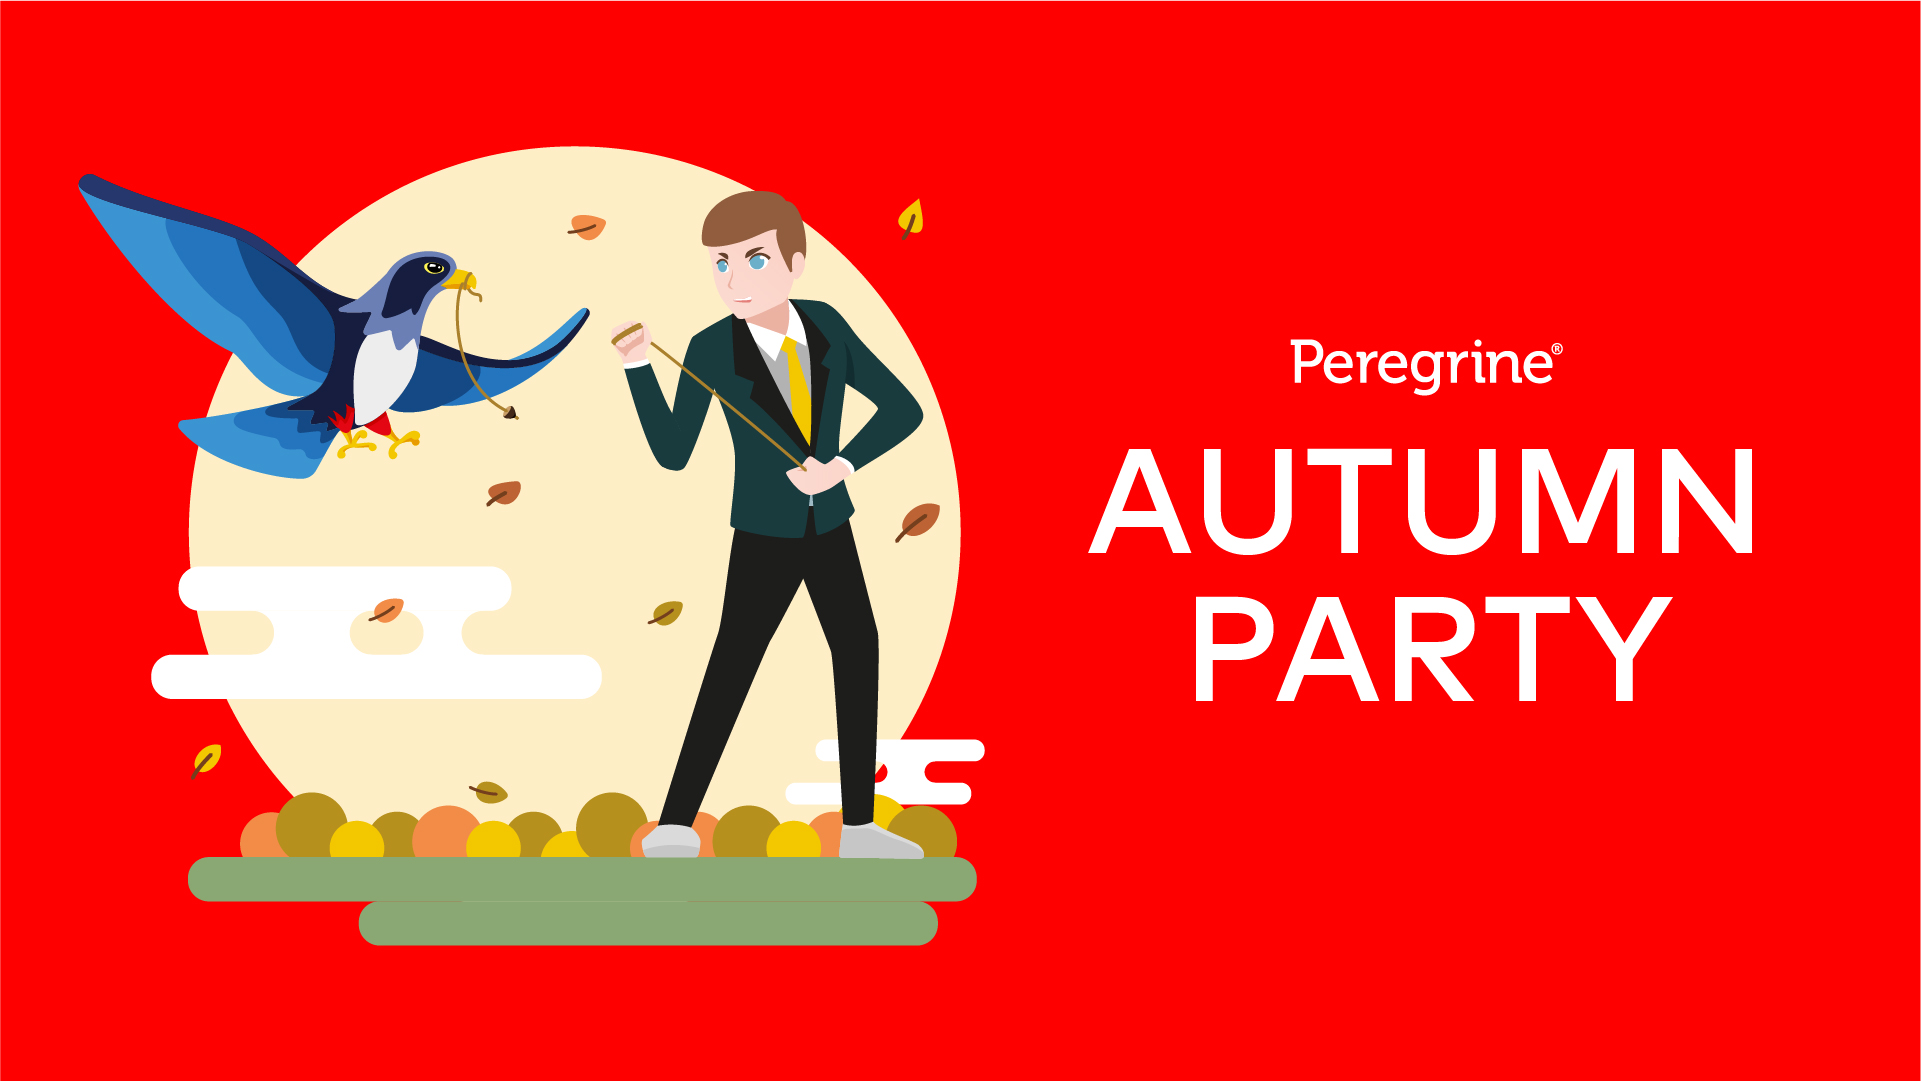 Cover image for post: Peregrine Autumn Party 2018